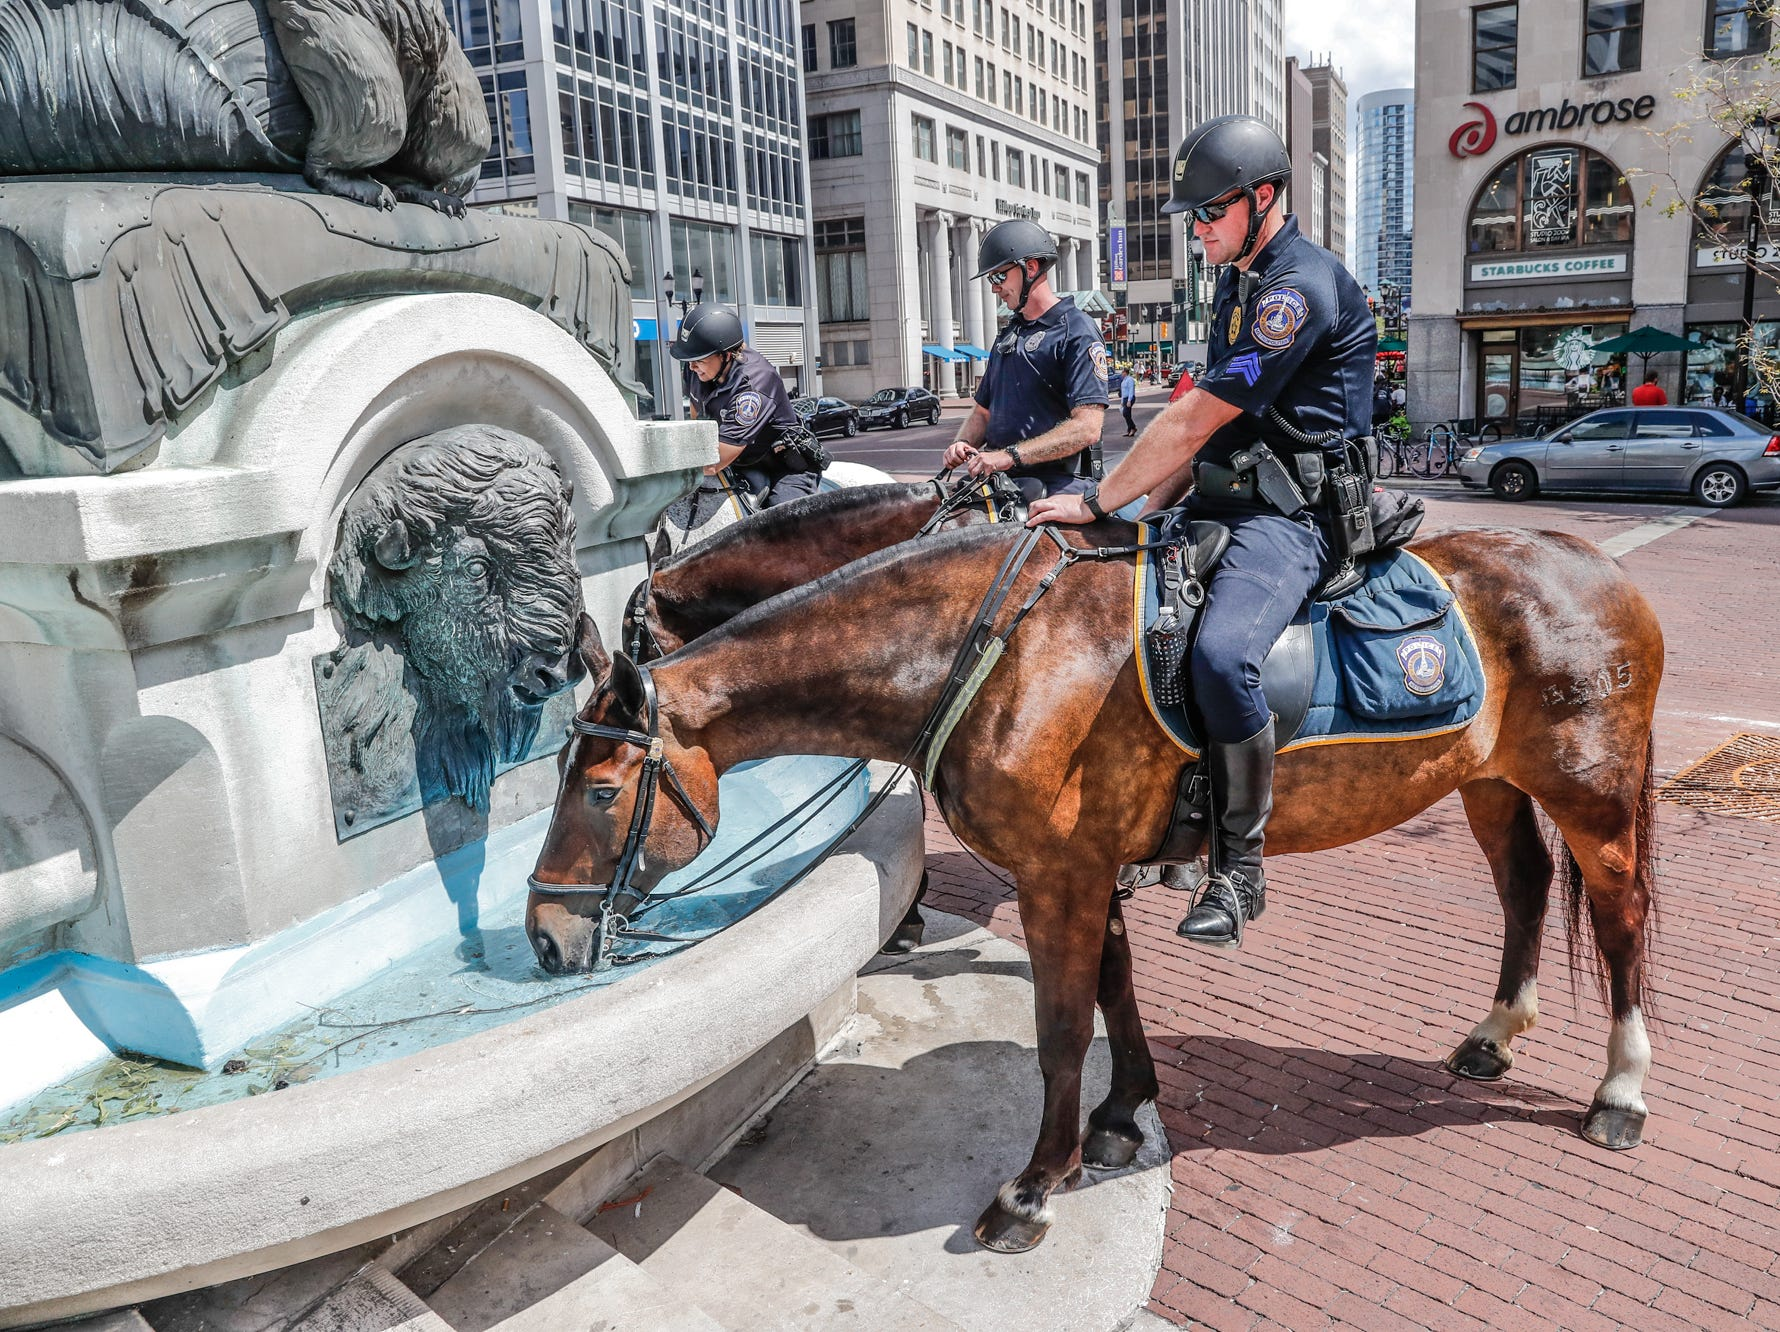 IMPD Mounted Patrol officers, front to back, Sgt. Allan Whitesell, Chad Pryce, and Lorie Phillips stop to water their horses, Maddie, Ramsey, and Cody at the Soldiers and Sailors Monument fountains on a near ninety degree day in downtown Indianapolis on Tuesday, Sept. 4, 2018.